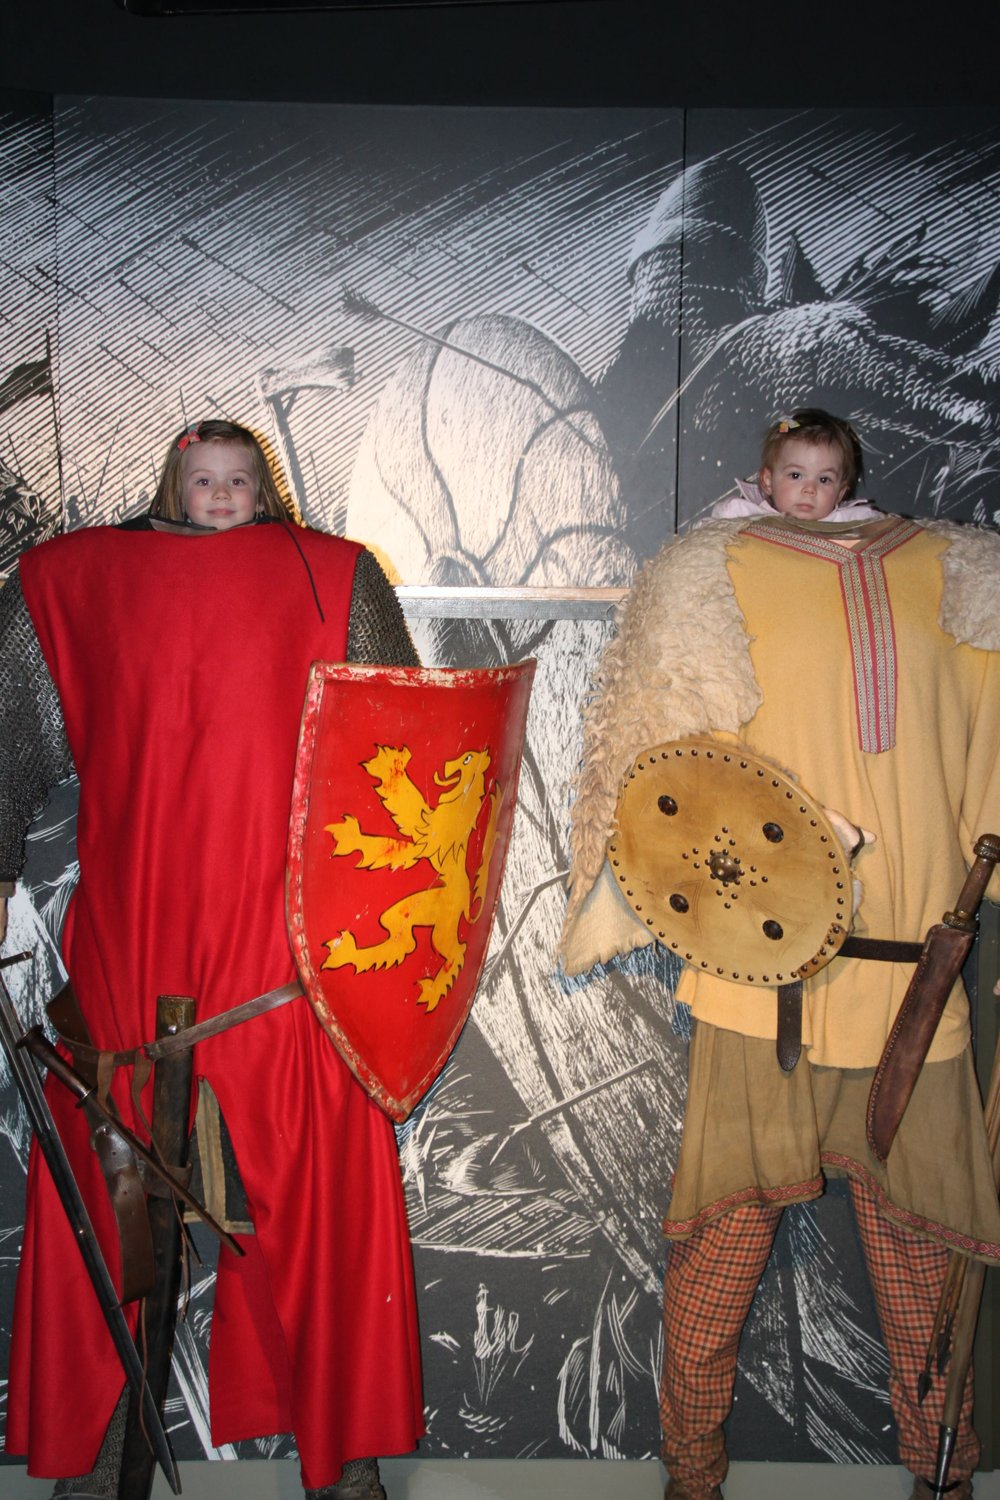 knights-at-king-johns-castle-in-limerick.jpg